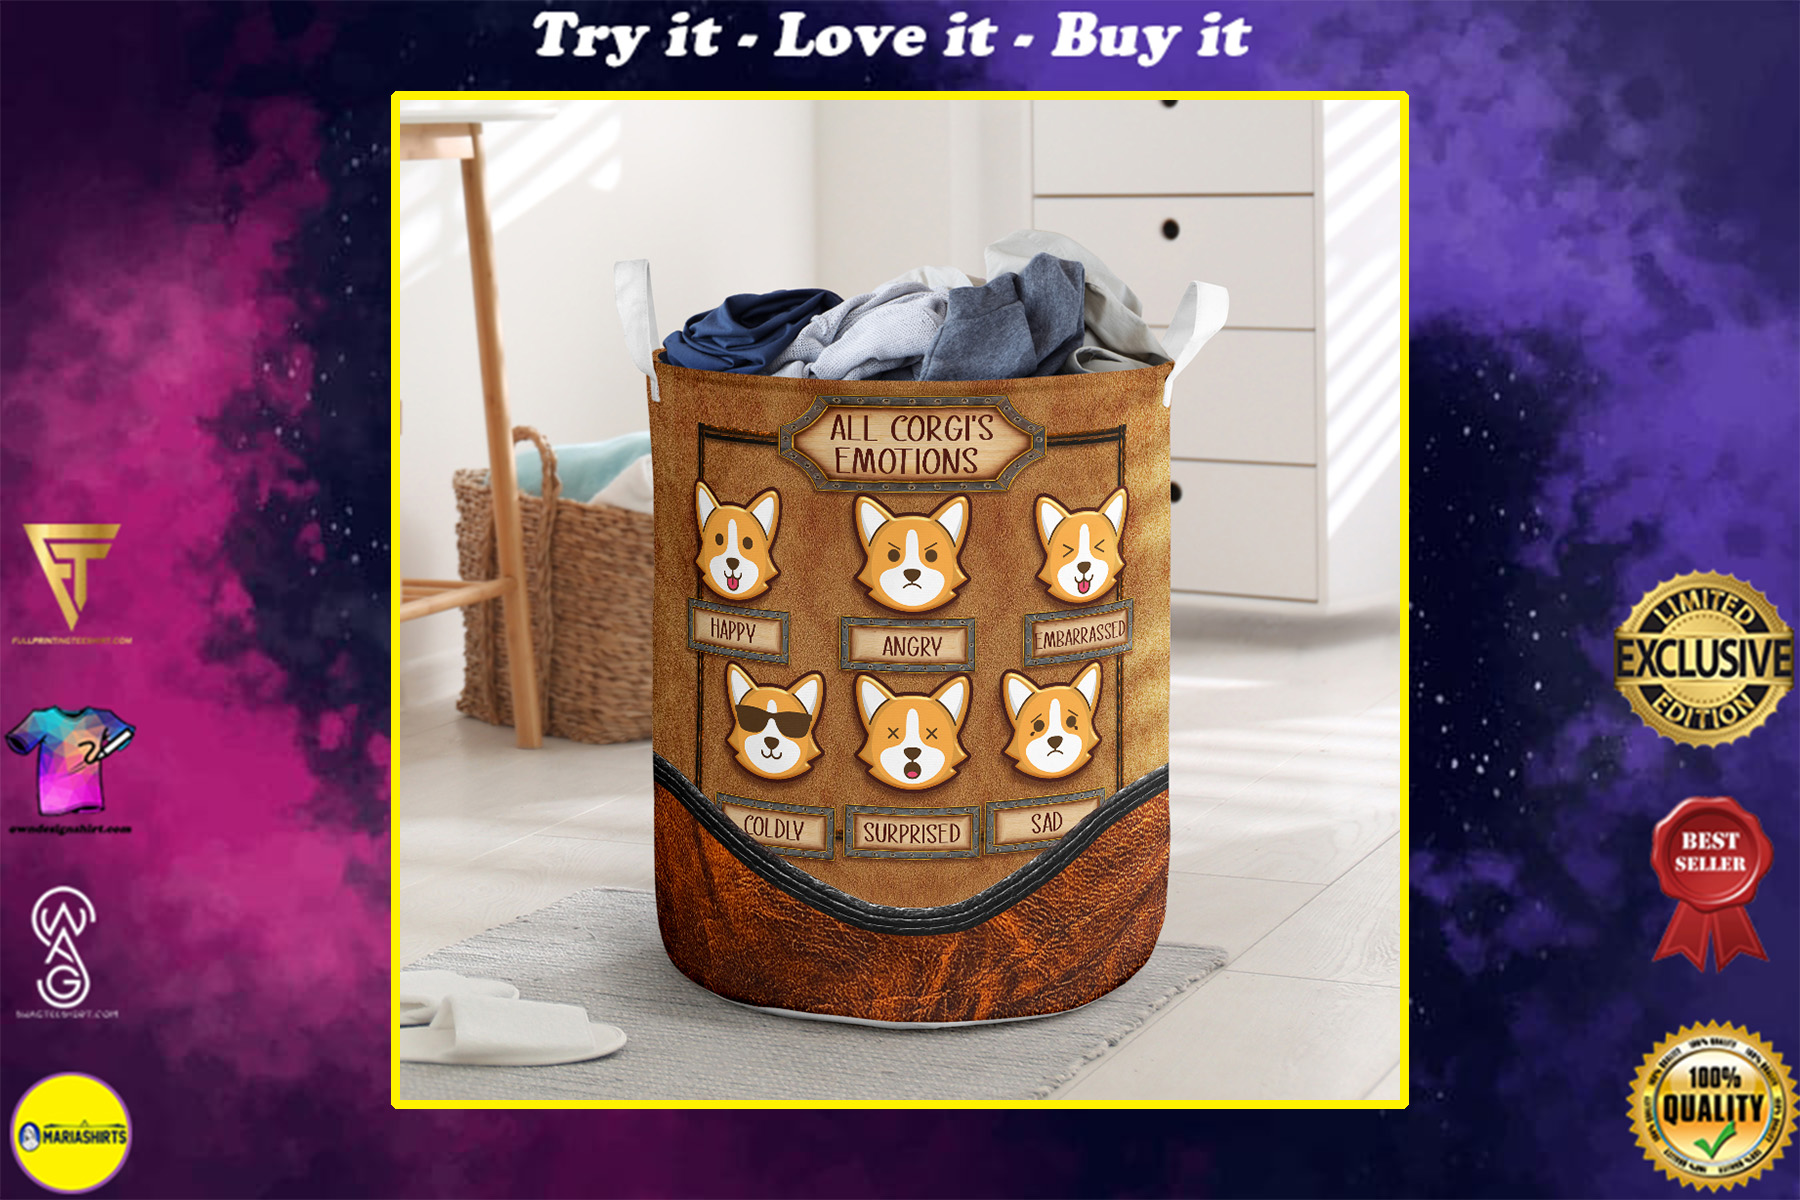 all corgis emotions all over printed laundry basket